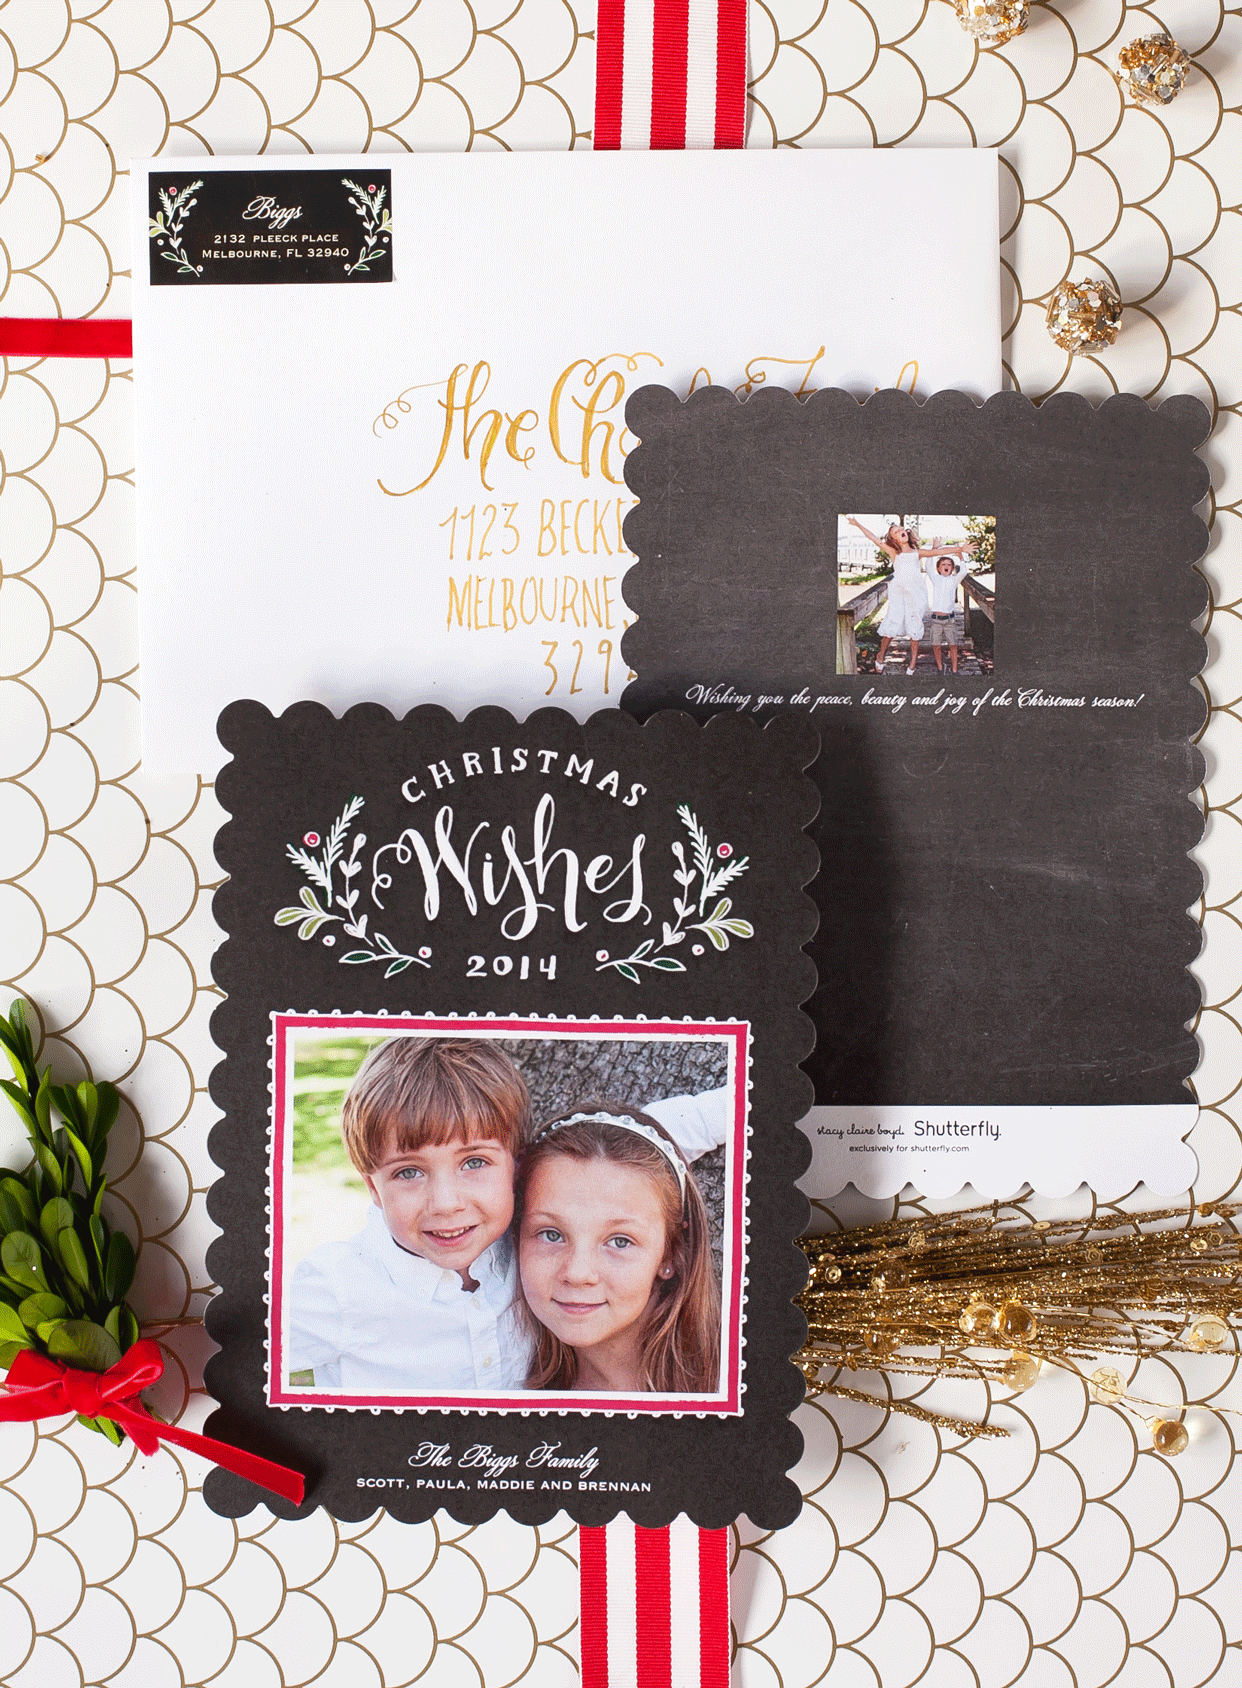 creative christmas card ideas 2 - Christmas Photo Cards Ideas